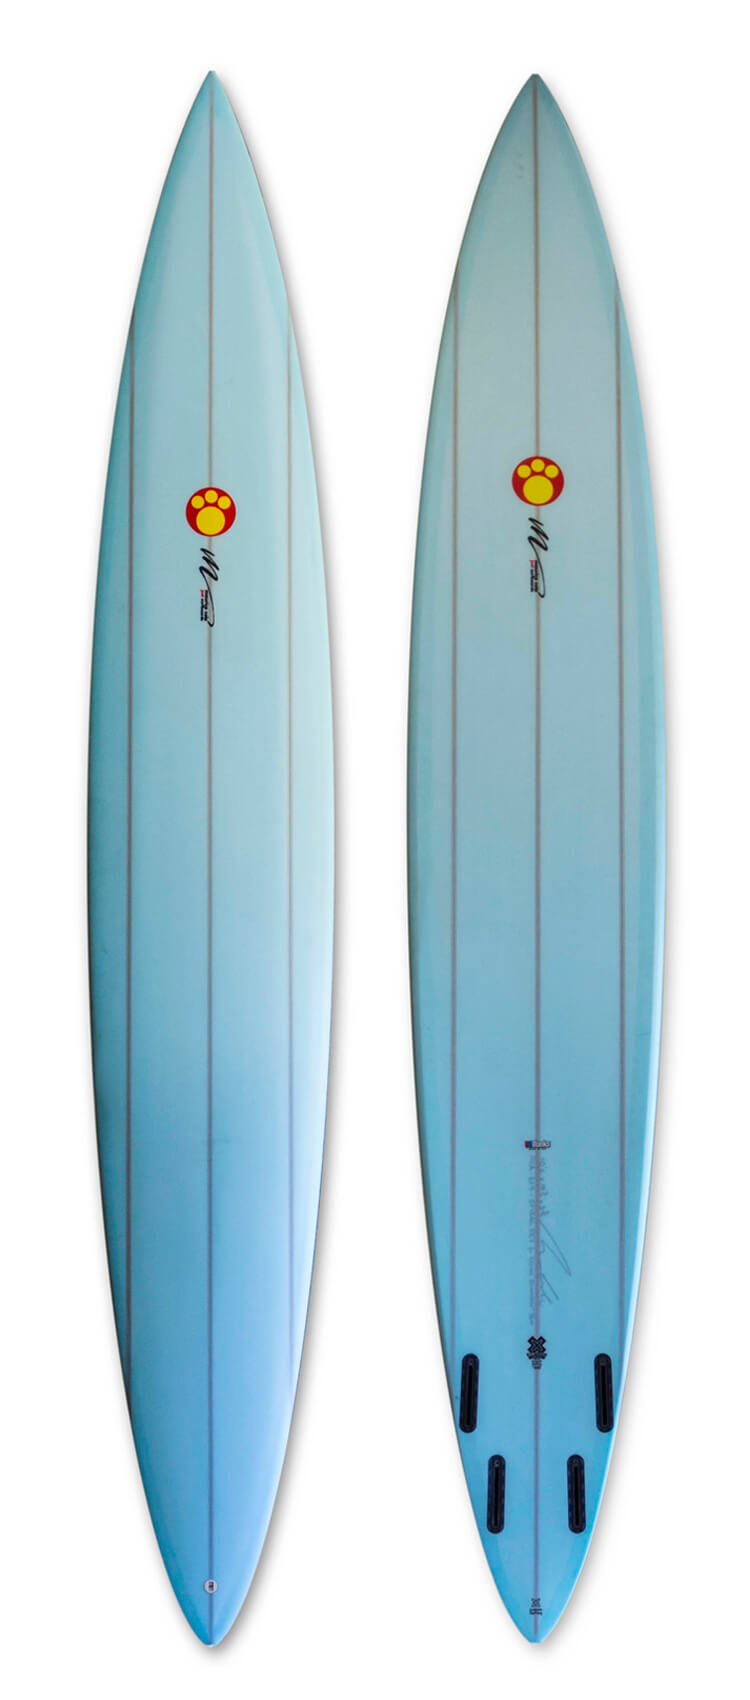 "Noah Johnson 10'6"" epoxy"